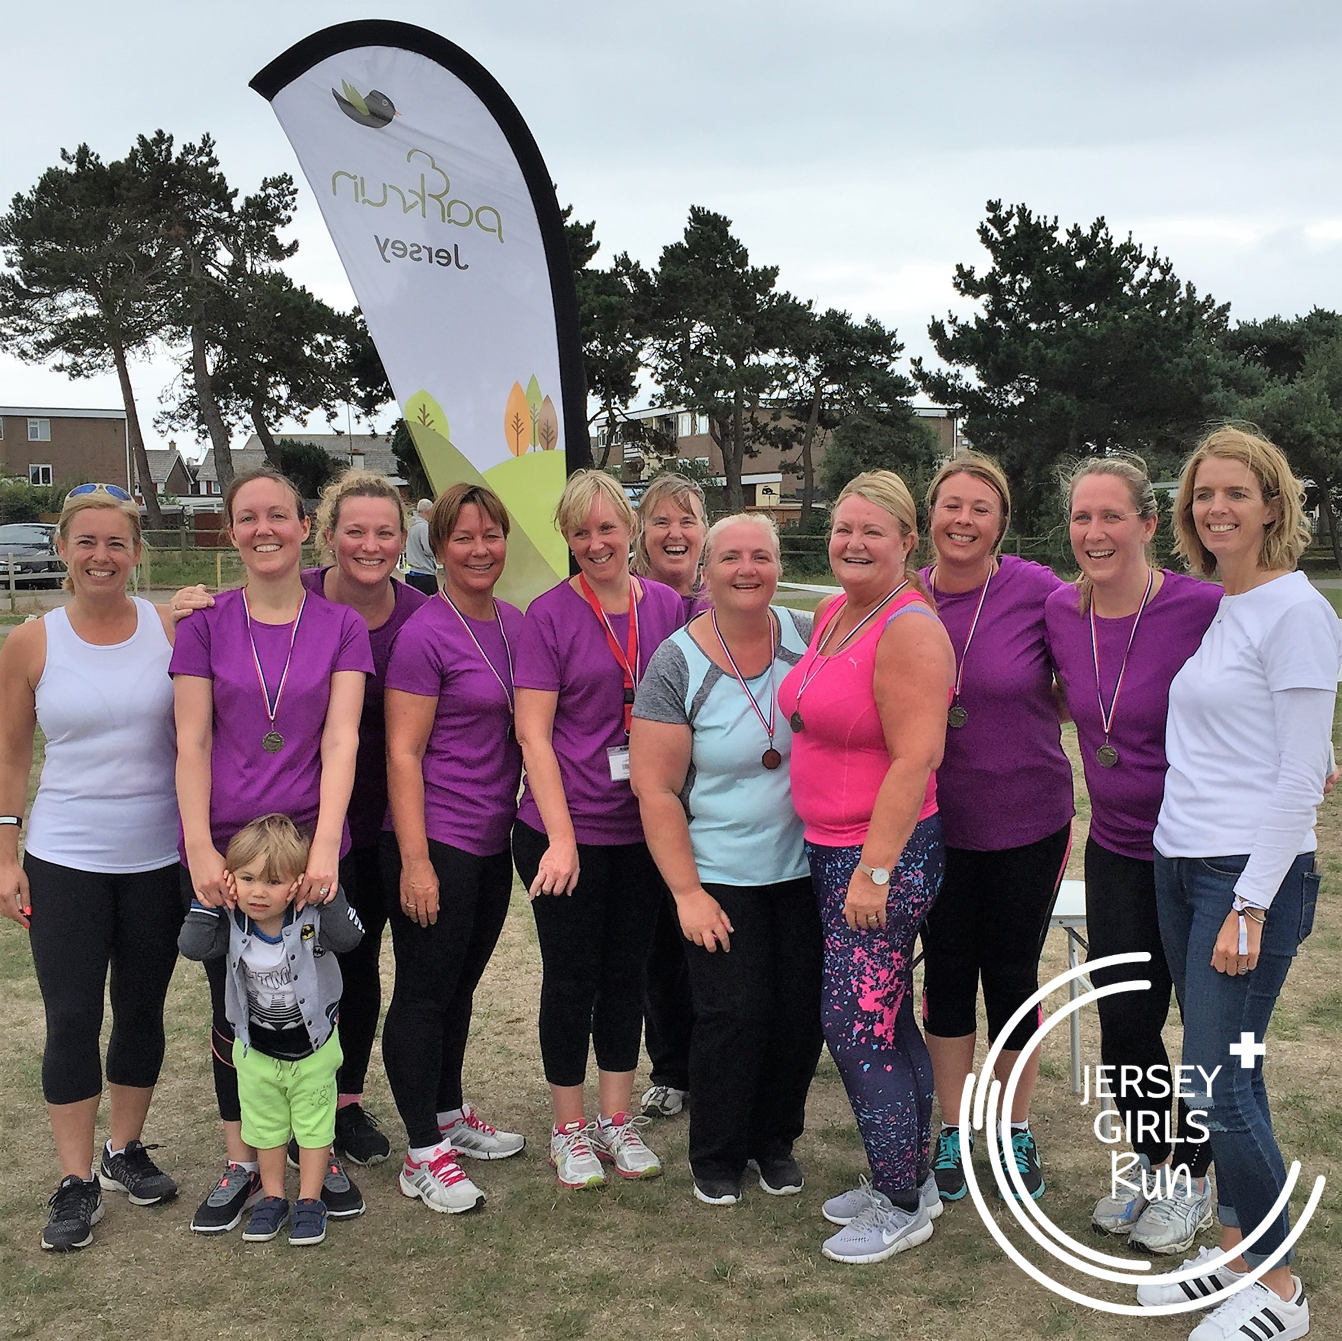 15 JULY 2017 - Team Aspire head to parkrun - CONGRATULATIONS to teams Team Aspire who completed their nine week C25K program with JERSEY GIRLS and headed to Jersey's parkrun to run their 5k.The group started off the program in the middle of May and immediately bonded, often meeting up to do their weekend runs together to provide additional support to each other.  As well as the ladies pictured, we had a further two ladies withing the group completing their 5km.